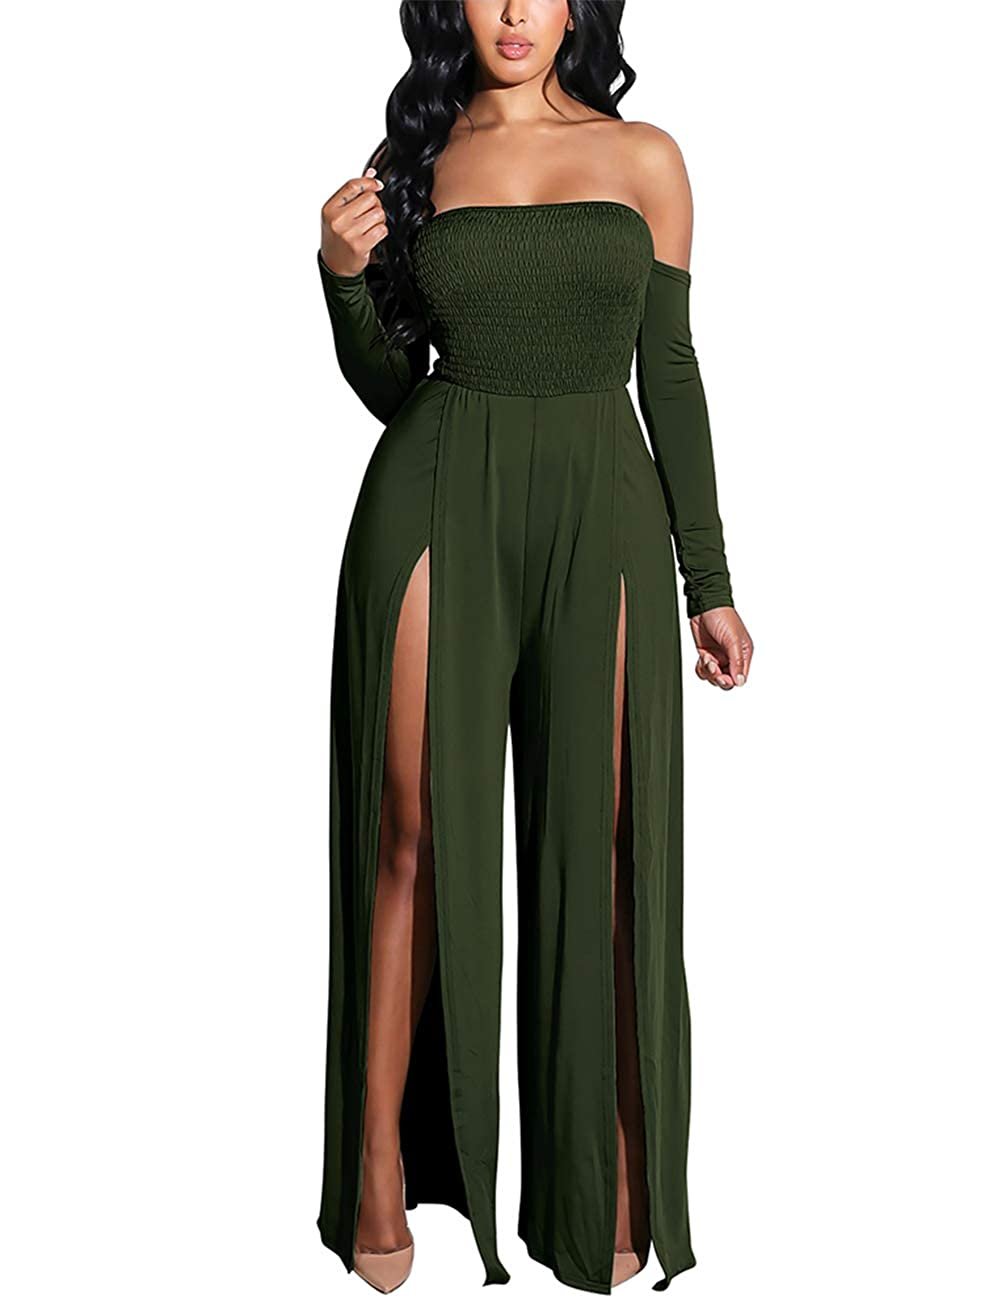 232d3803f66 Amazon.com  Vilover Women s Tube Top Jumpsuits Strapless Stretchable Long  Sleeve Wide Leg Rompers High Slits  Clothing